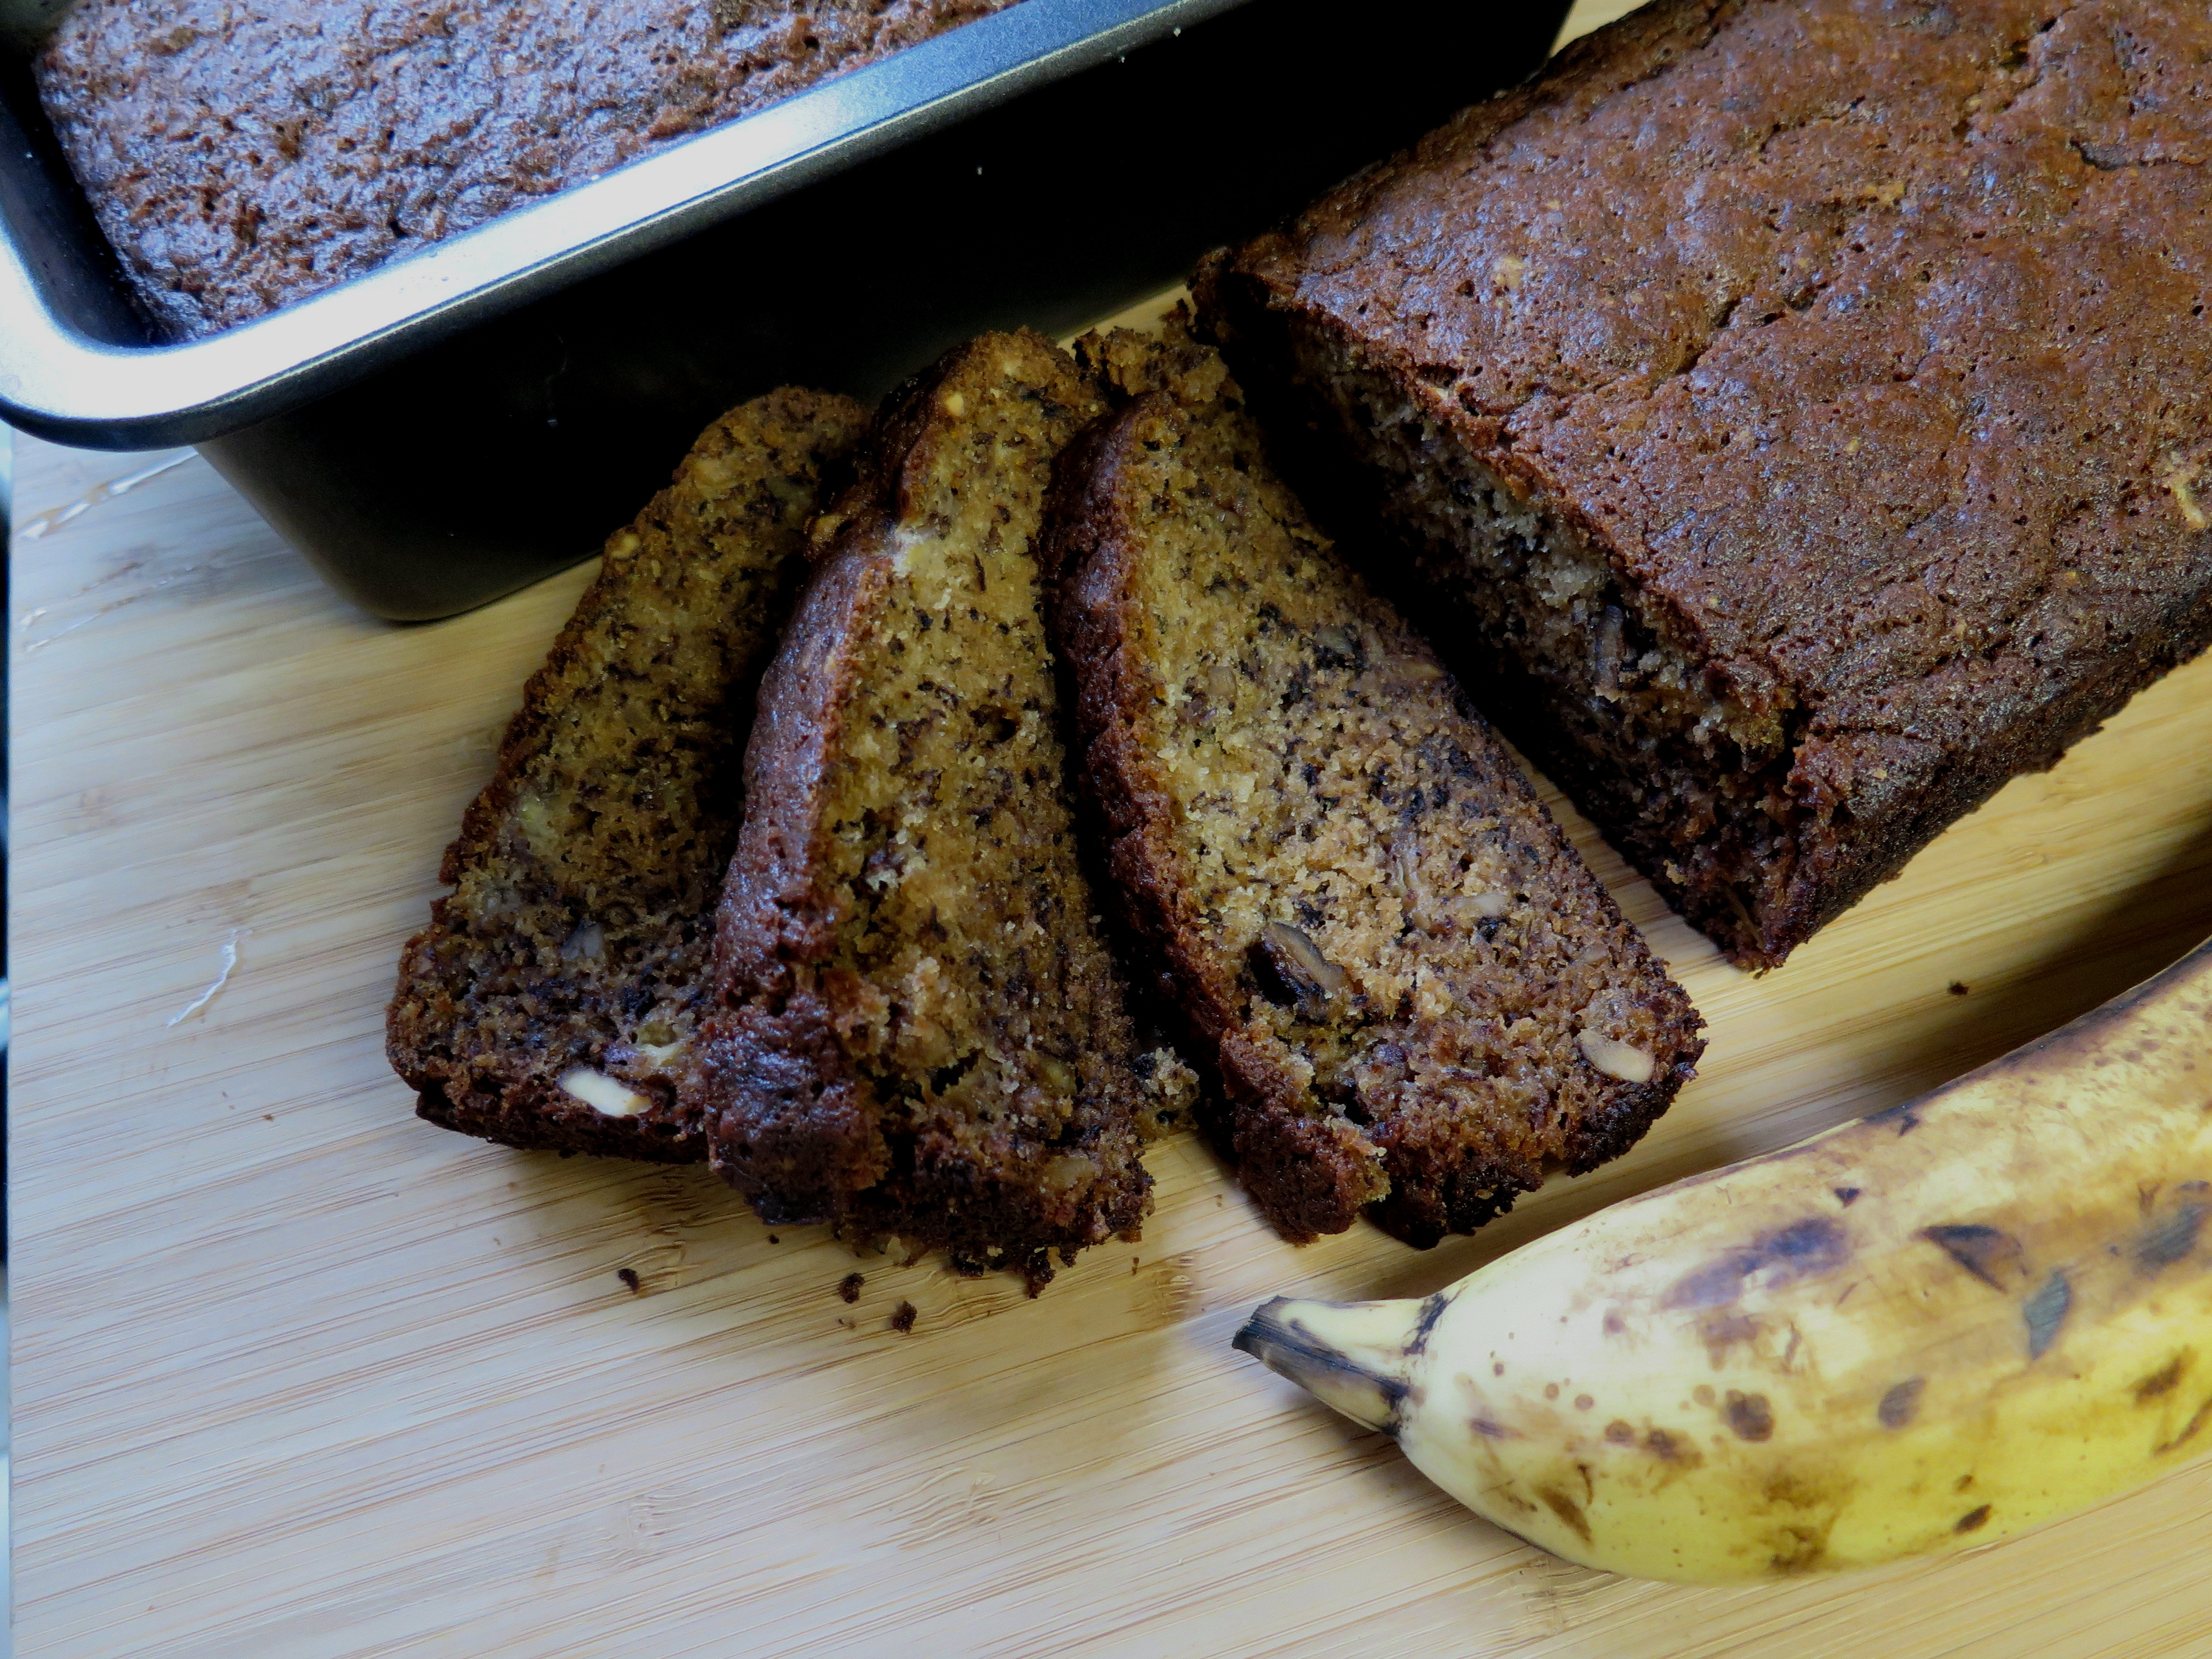 Too Many Bananas Bake Banana Nut Bread Beyondgumbo